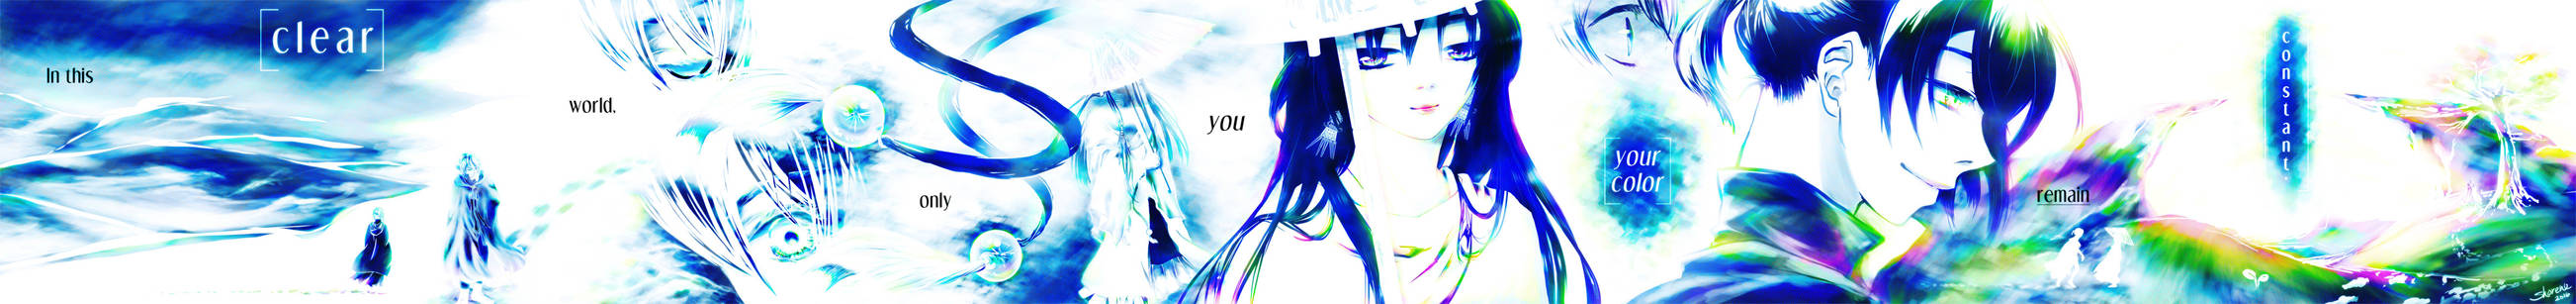 you [your color]